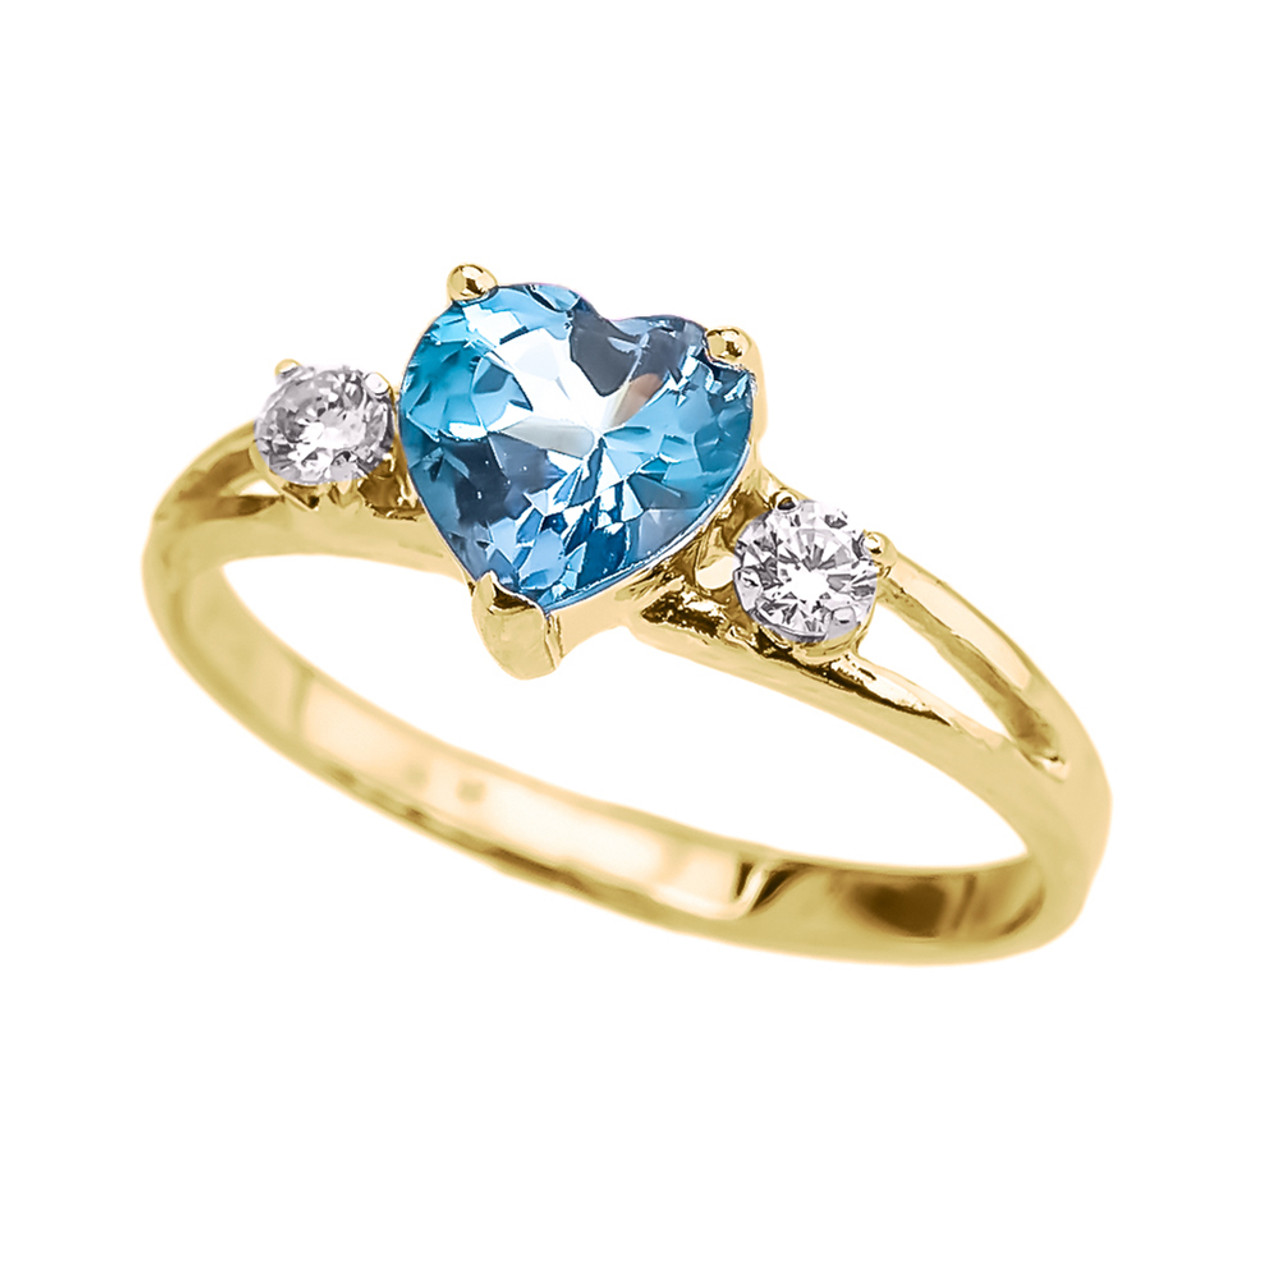 white tanzanite rings birthstone diamond wedding gtzr picks the and spotlight gold for december royal great ring jewelry